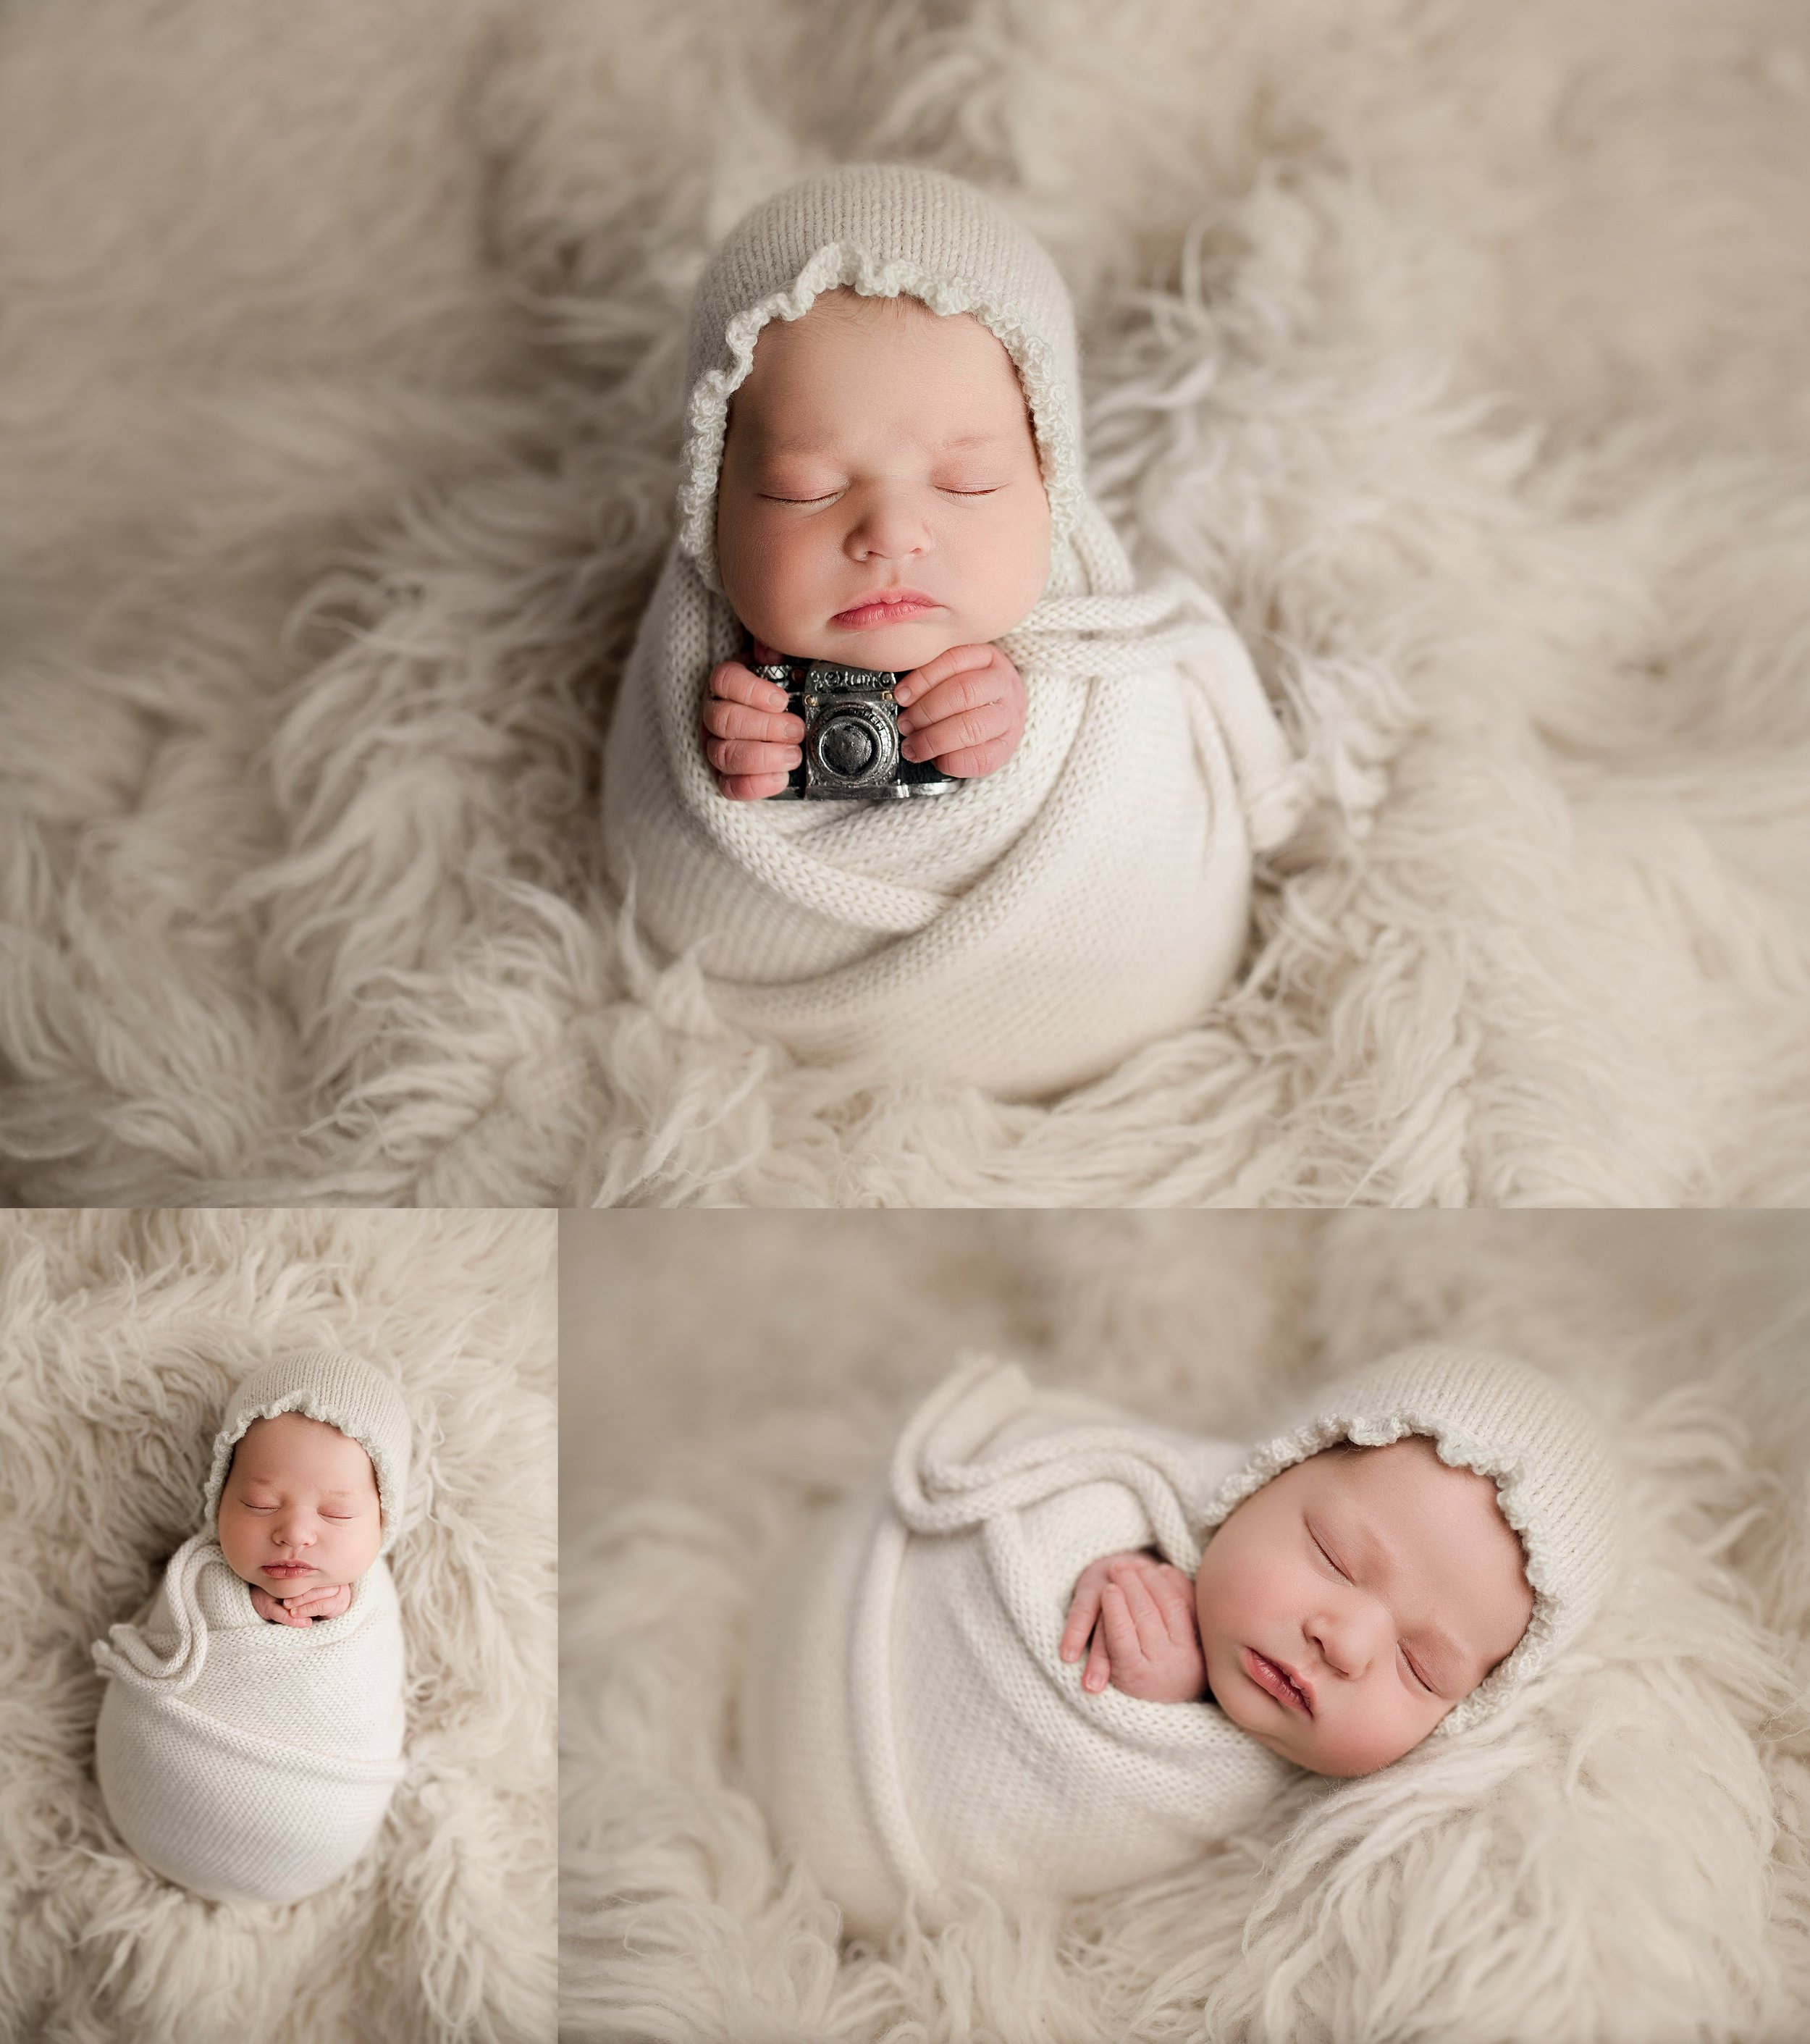 Newborn girl photoshoot posing ideas